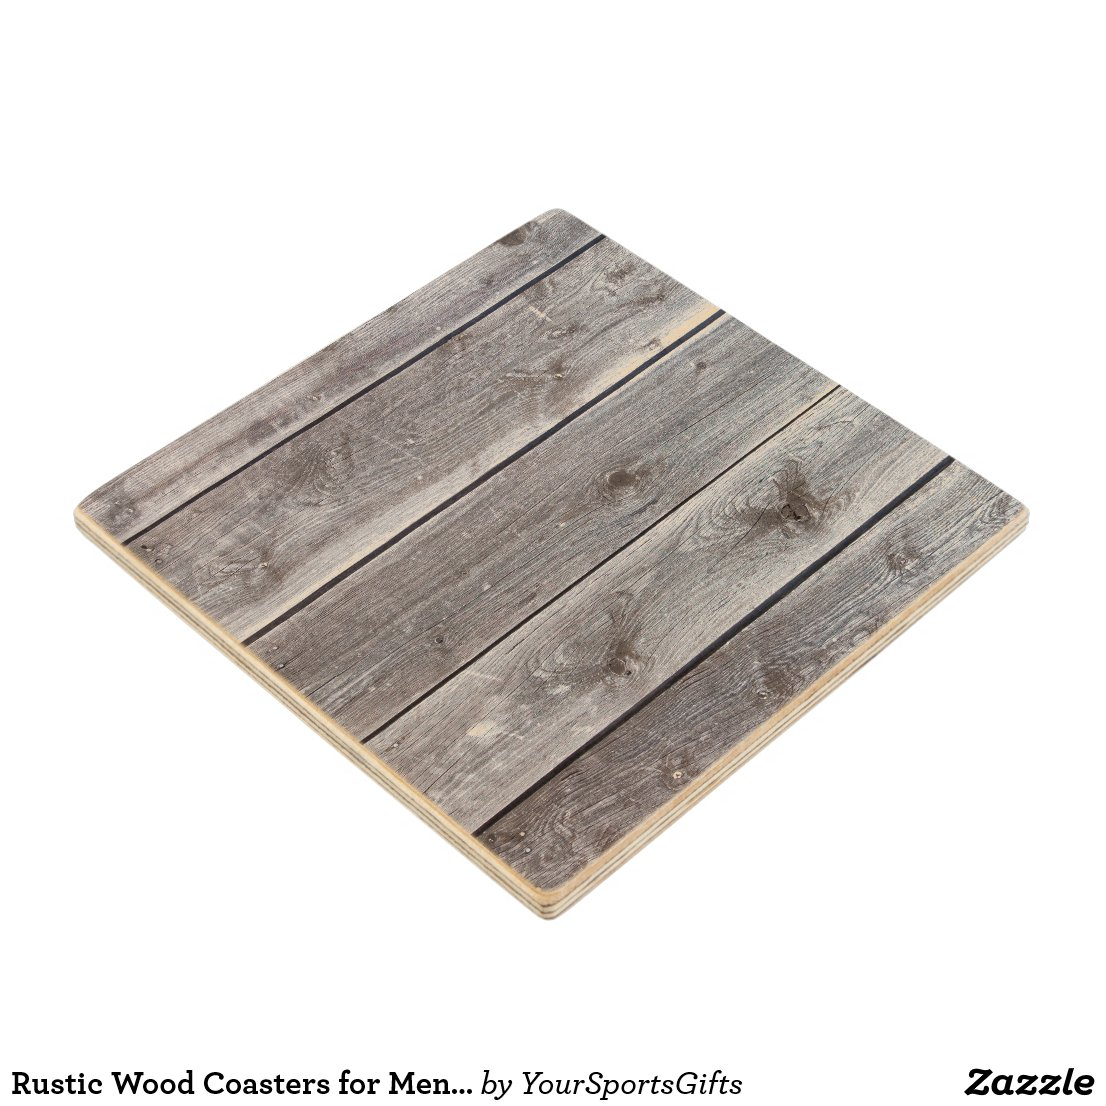 Rustic Wood Coasters for Men and Women